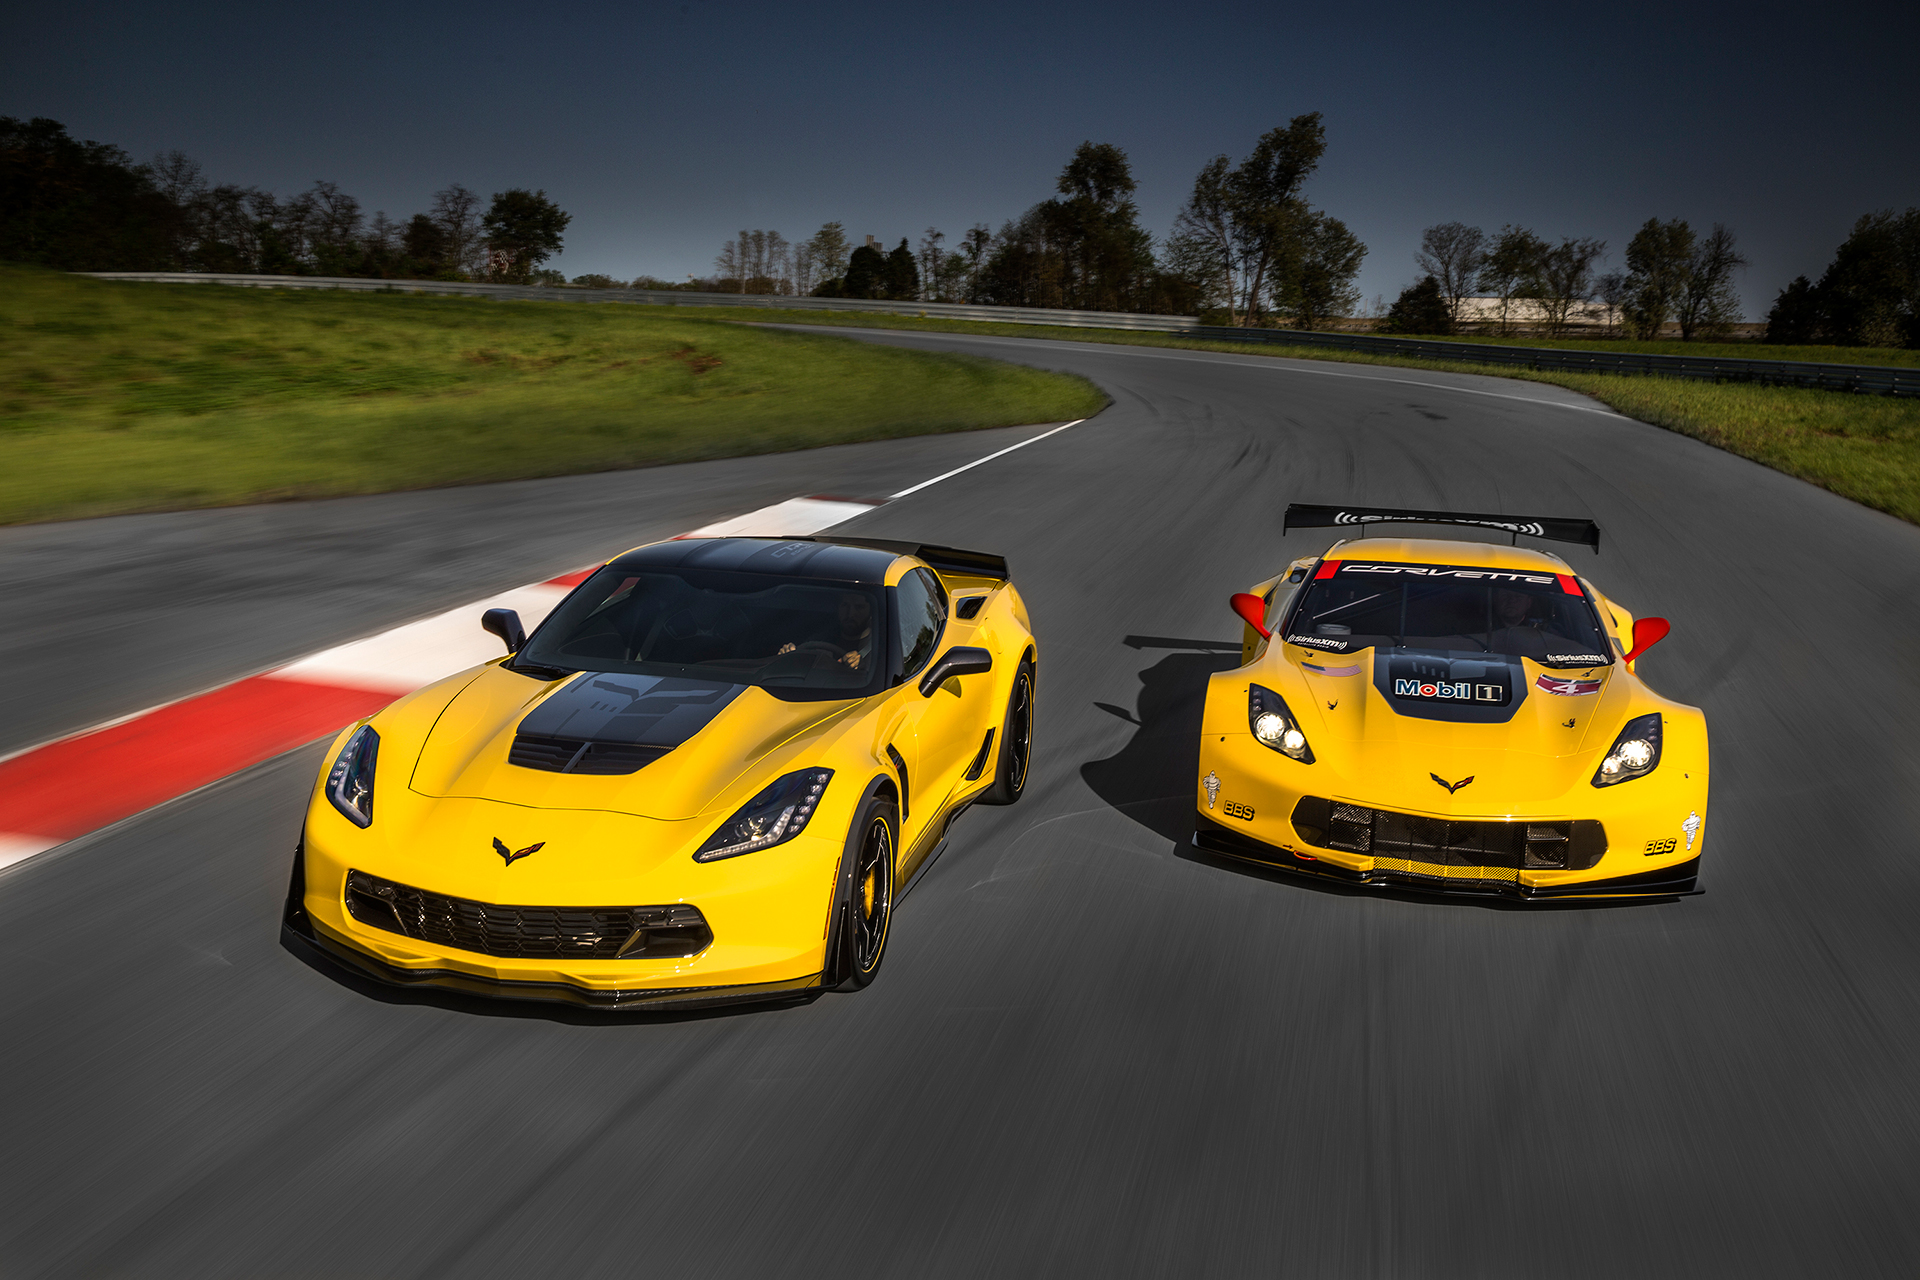 Chevrolet Corvette Z06 2016 C7.R Edition - avant / front - General Motors